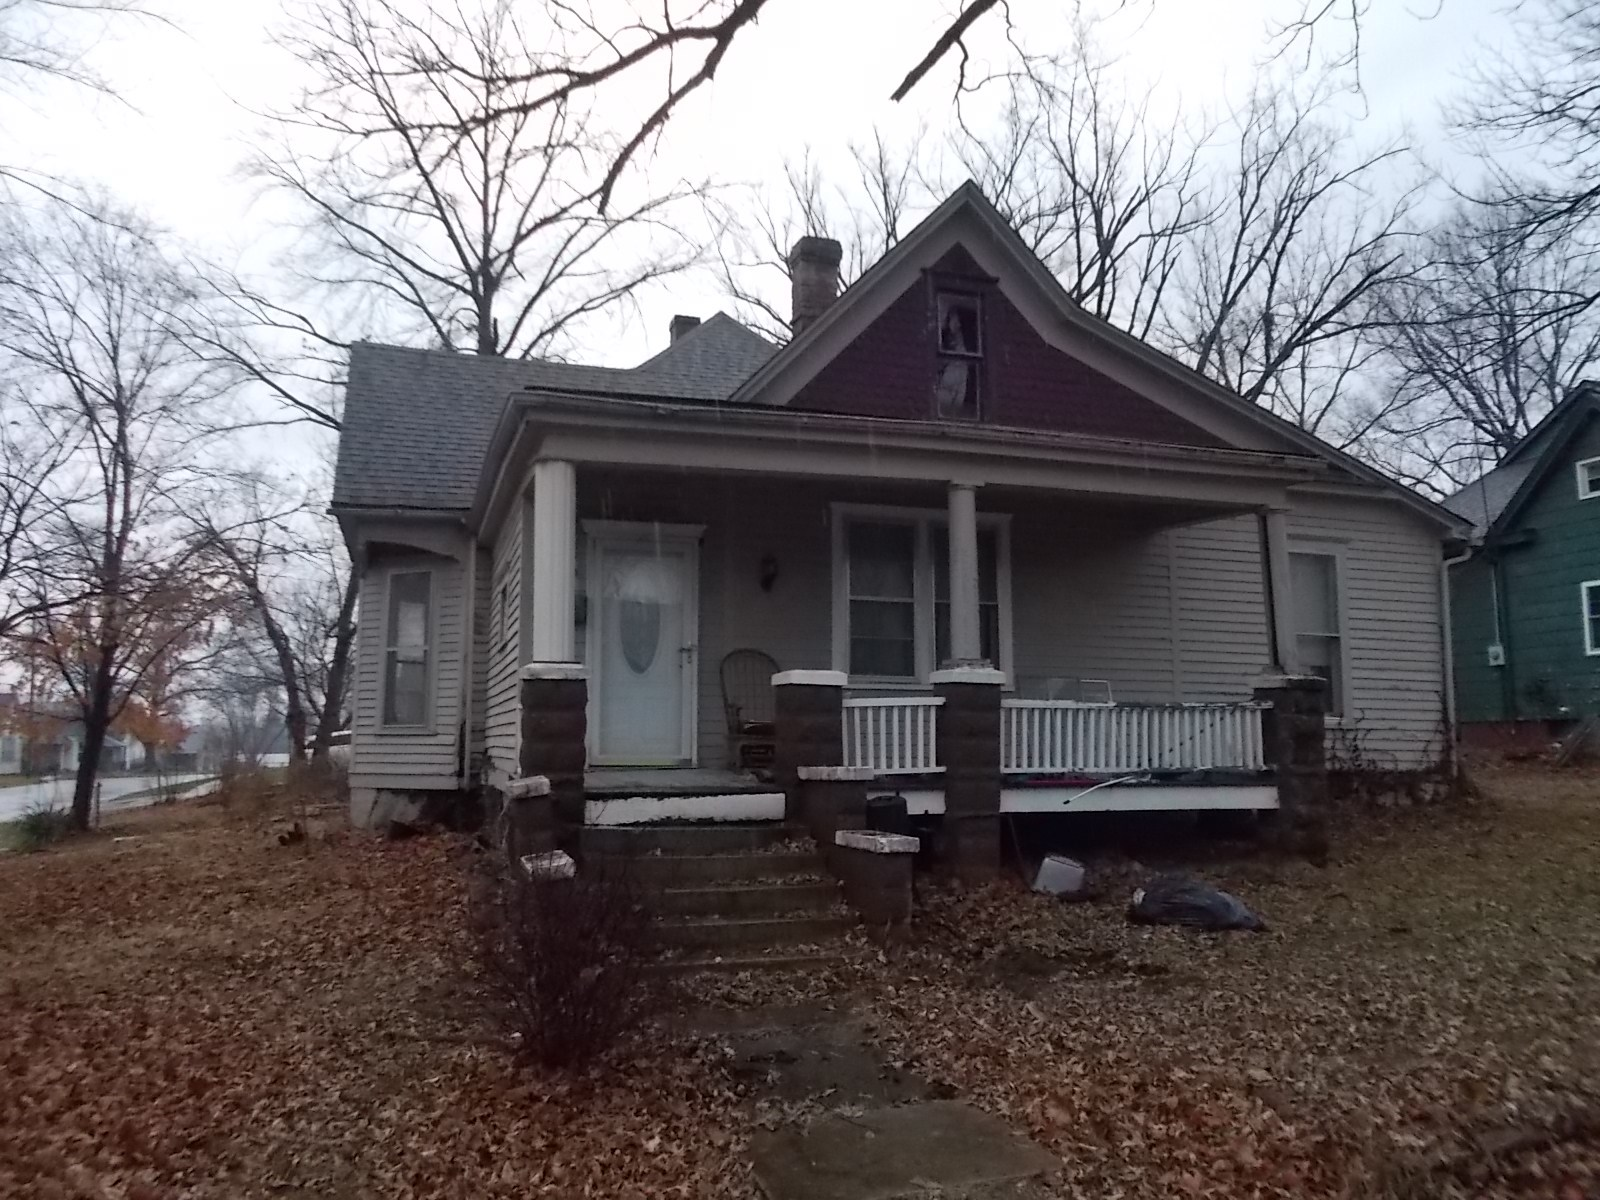 Home / 3 Bed Rental for Sale, 2 Blocks from CMU in Fayette